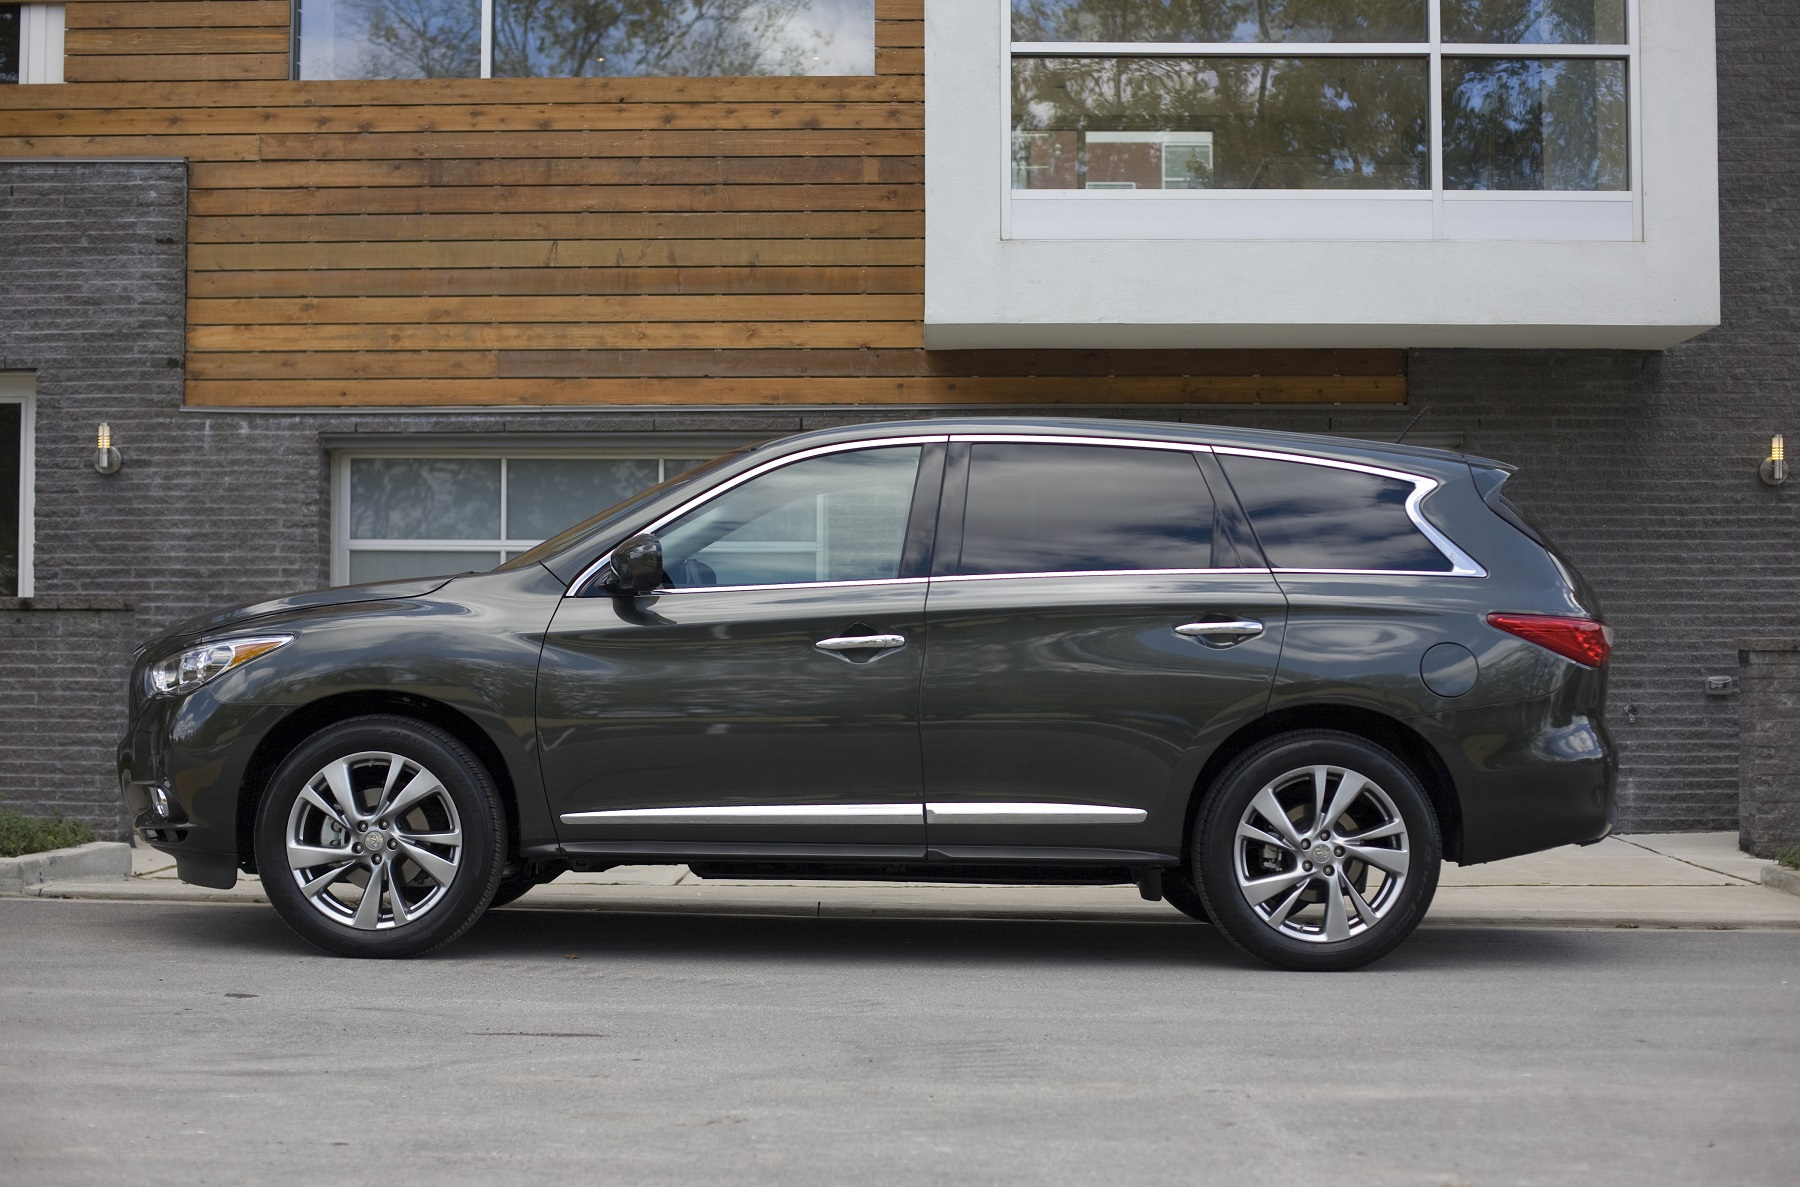 Manufacturer photo: On the outside the Infiniti QX60 pushes the boundaries of what a luxury crossover can be -- with signature styling cues such as dynamic and elegant line treatments inspired by nature